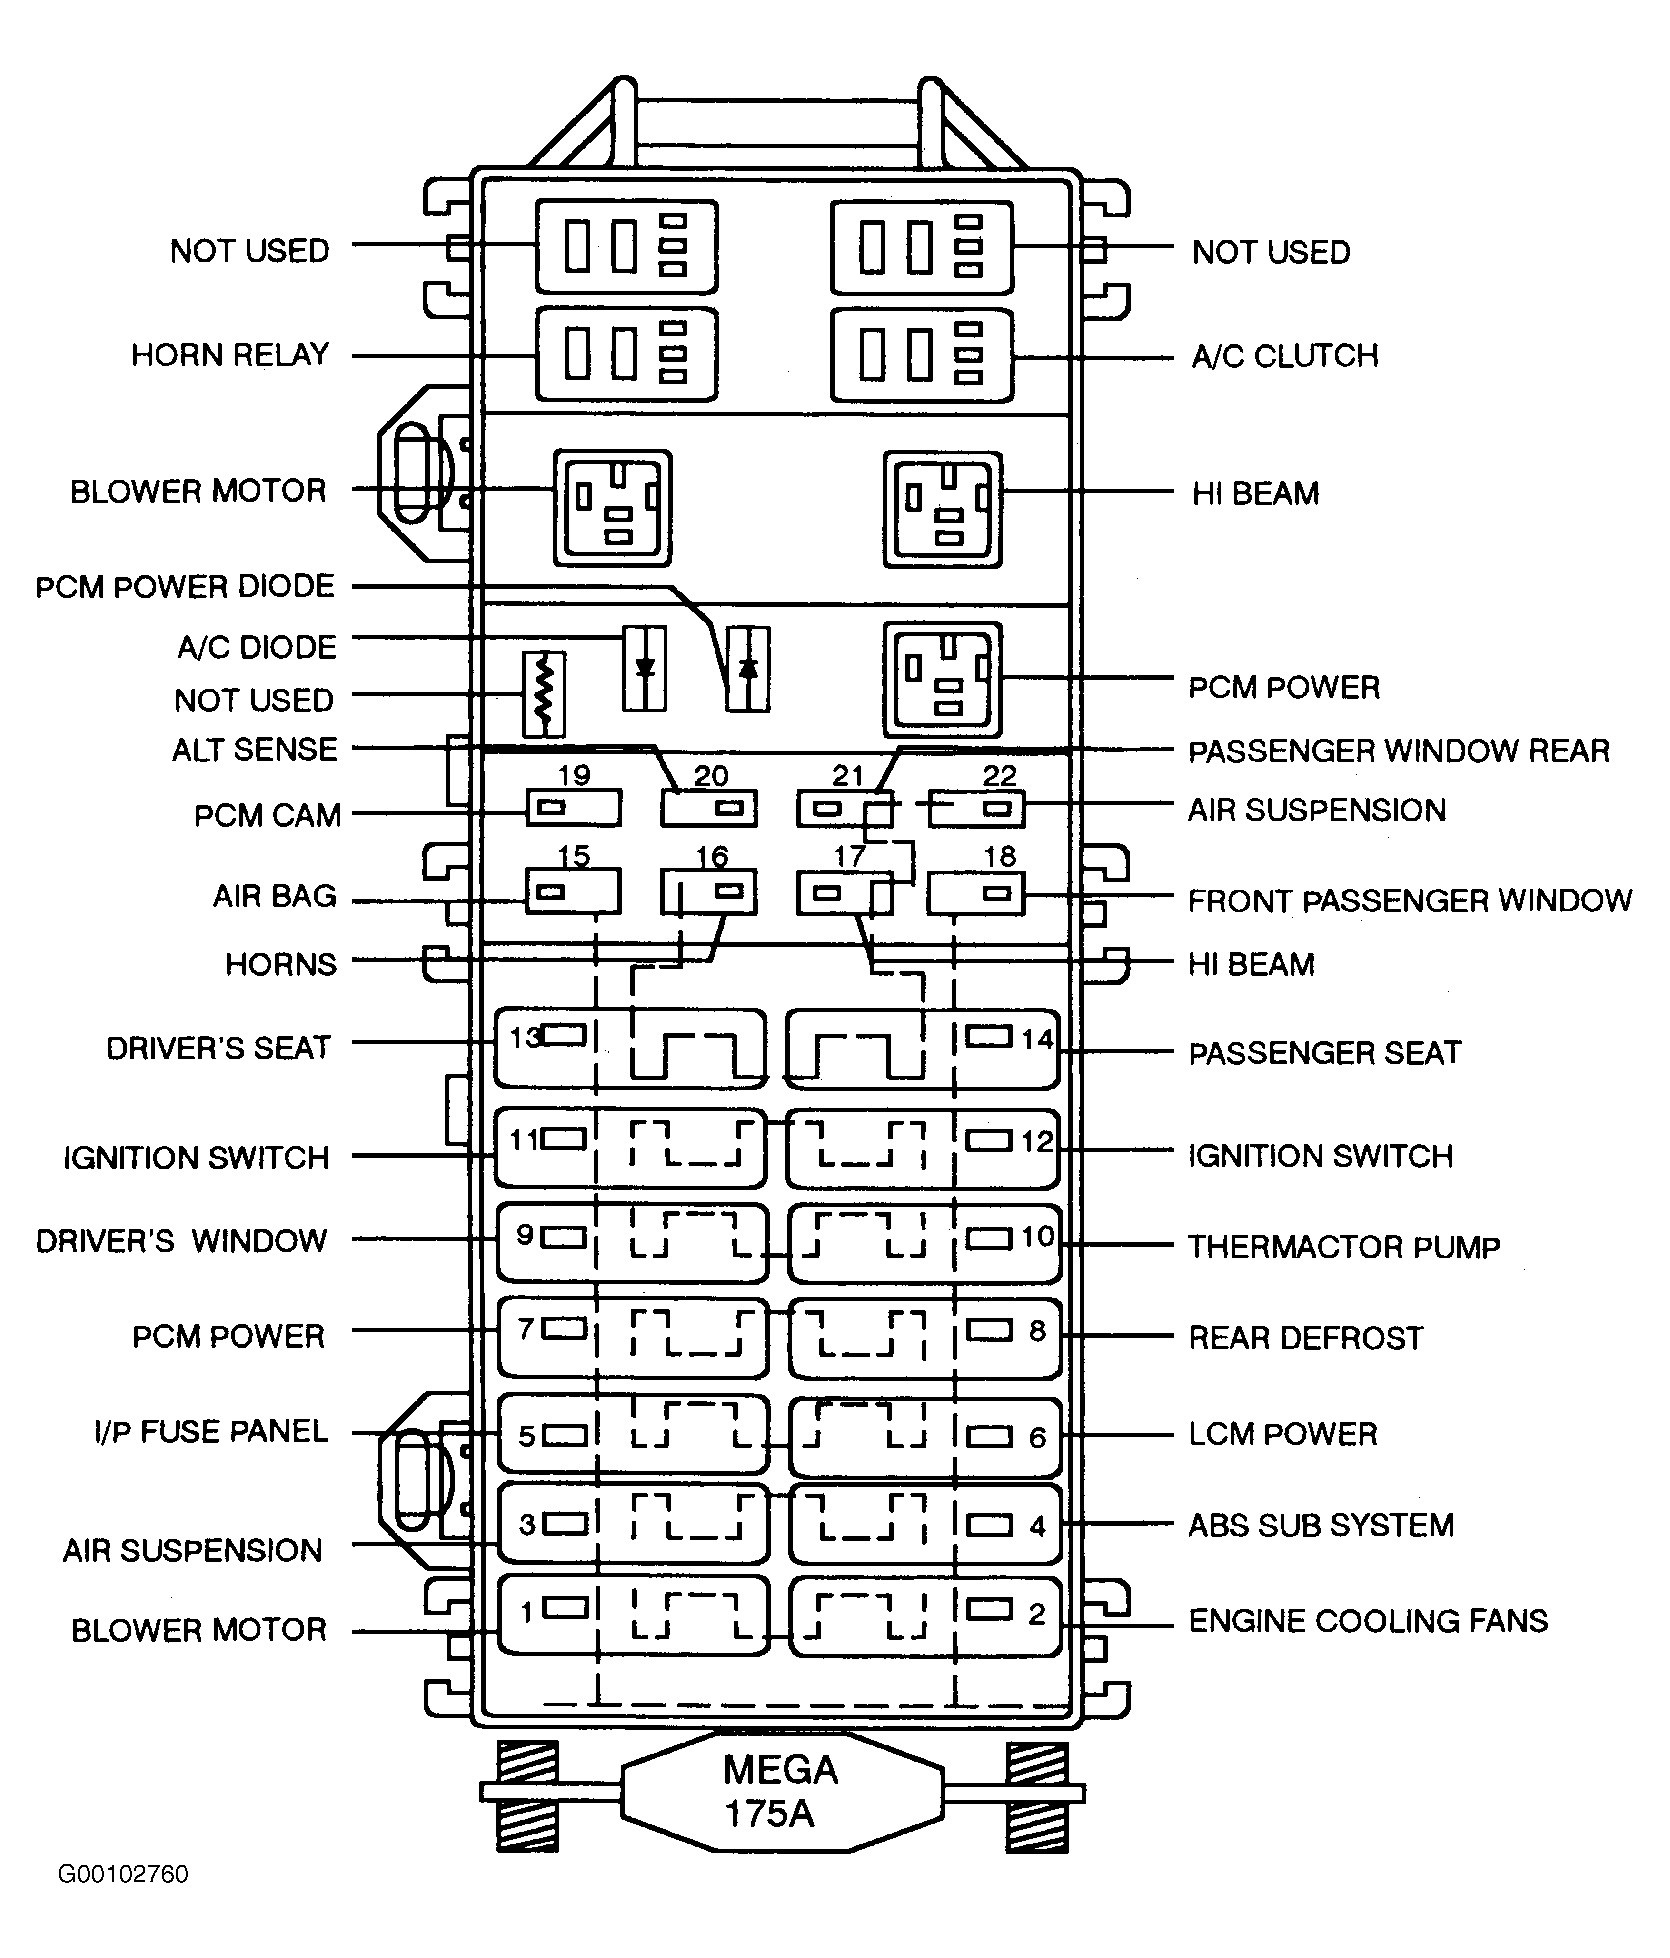 02 lincoln town car manual for fuse box schema diagram database smart car fuse box layout [ 1670 x 1958 Pixel ]